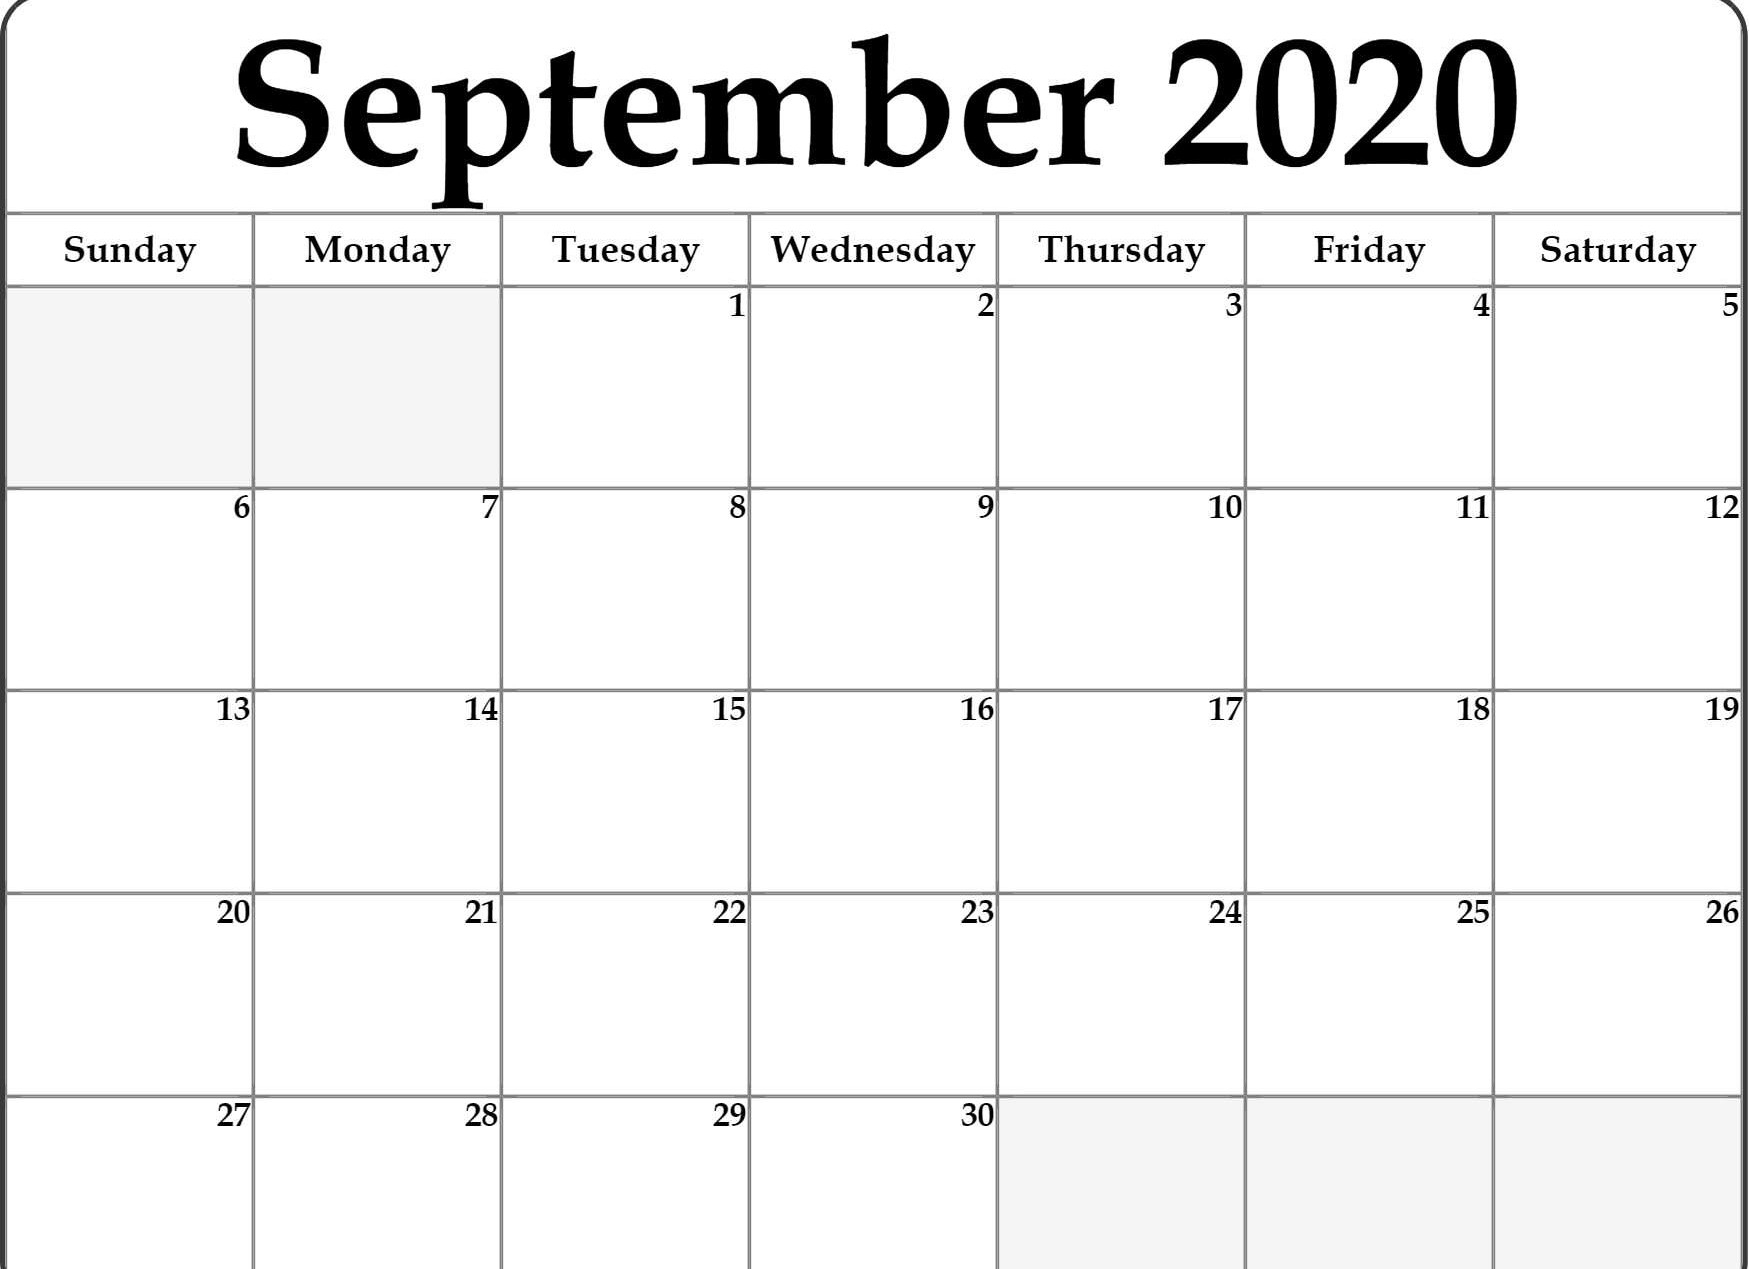 Awesome September 2020 Calendar Pdf, Word, Excel Template